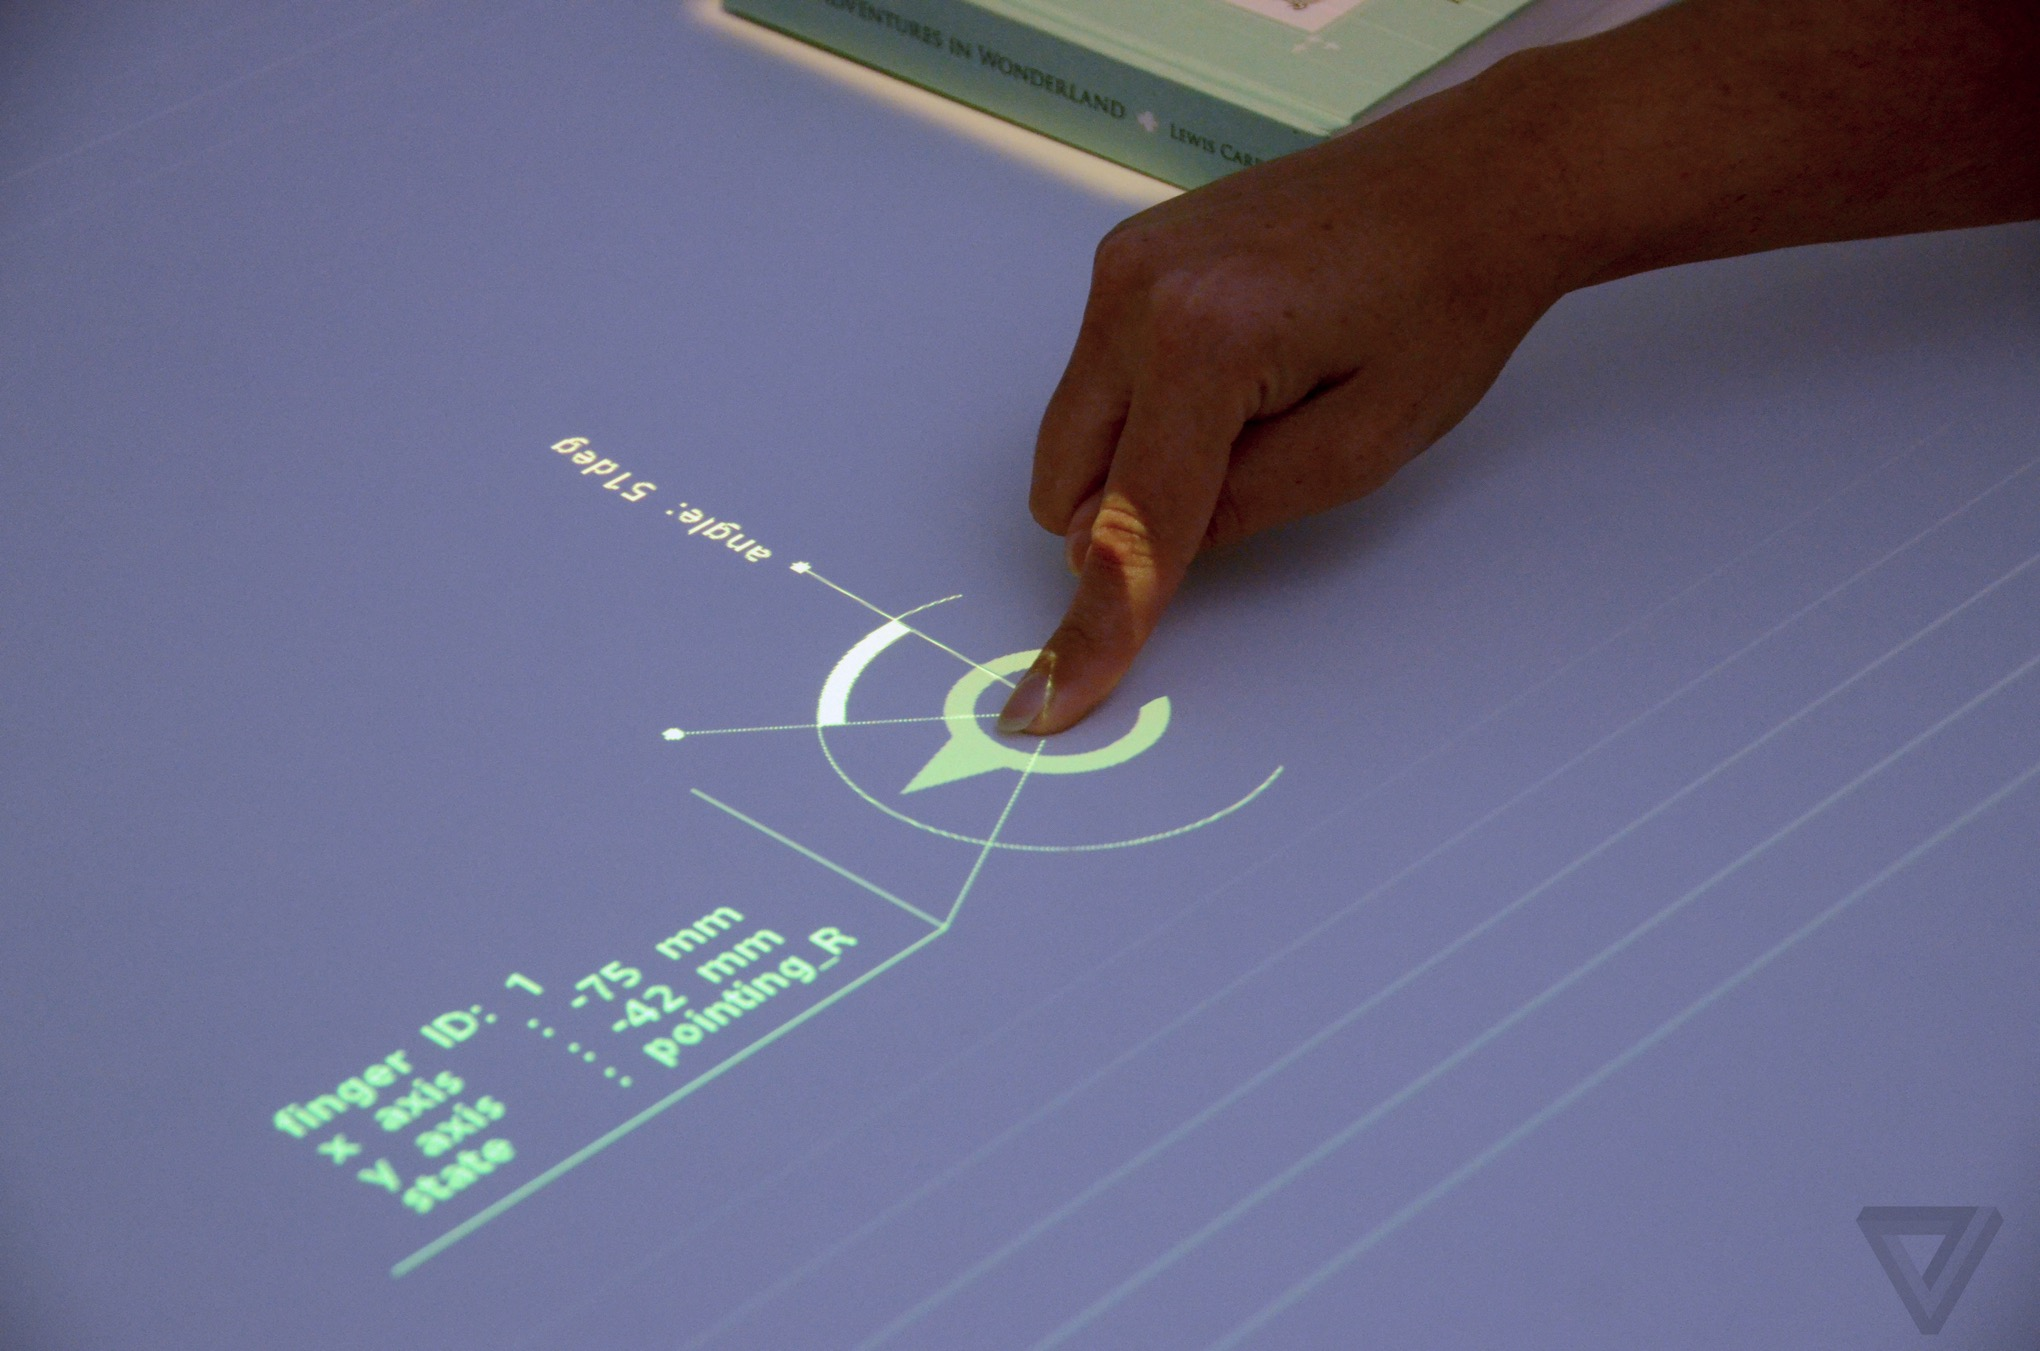 Sony's prototype projector turns any tabletop into a touch-sensitive display